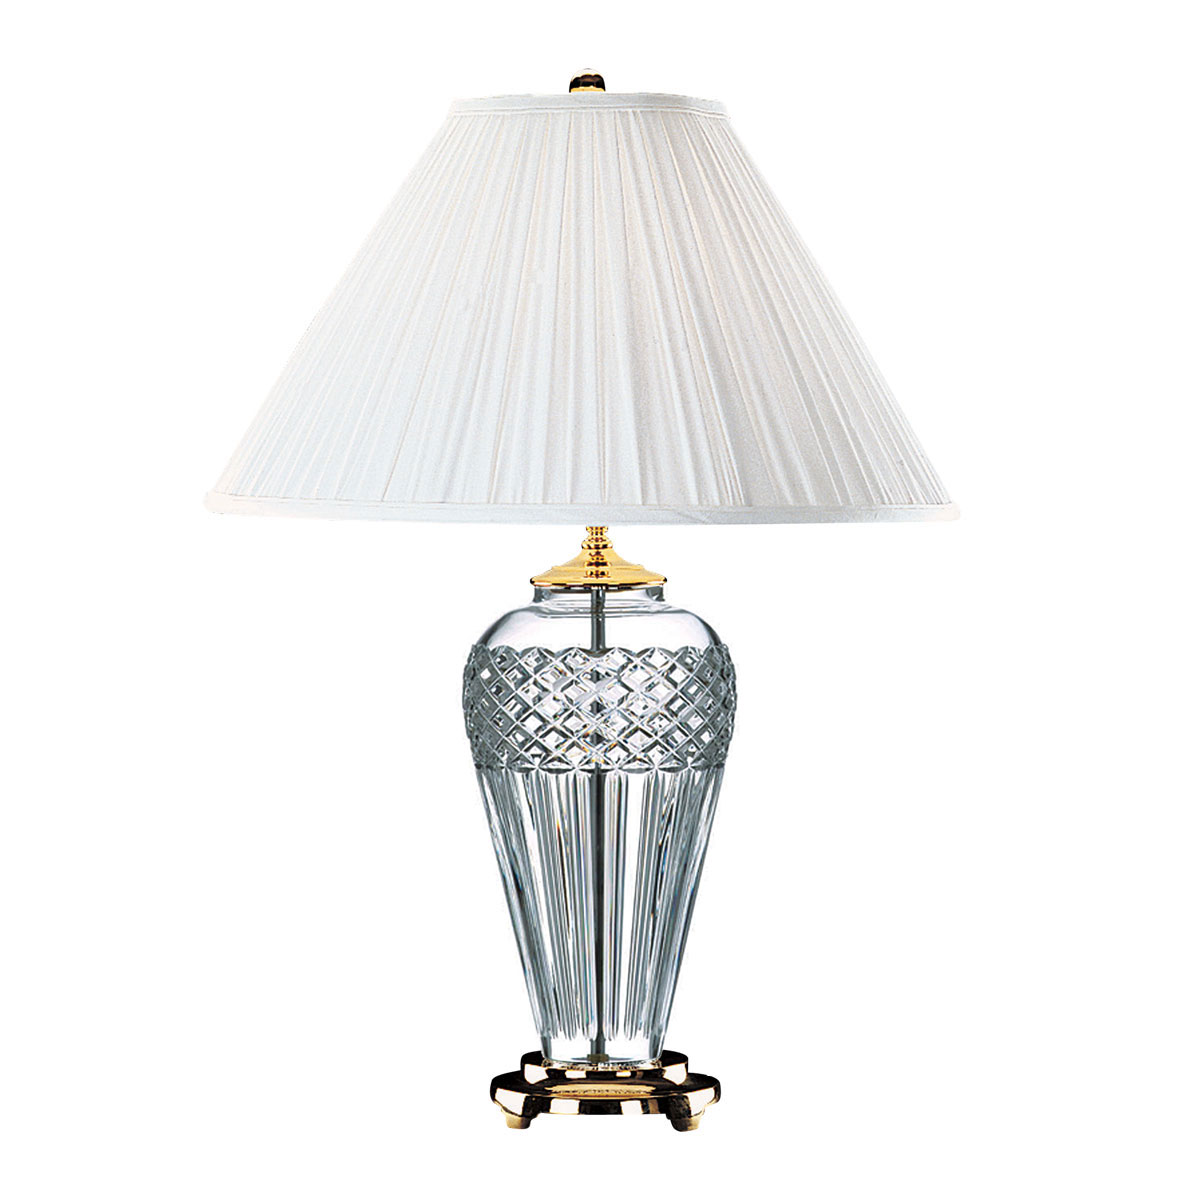 "Waterford Crystal, Belline Polished Brass 29"" Crystal Lamp"